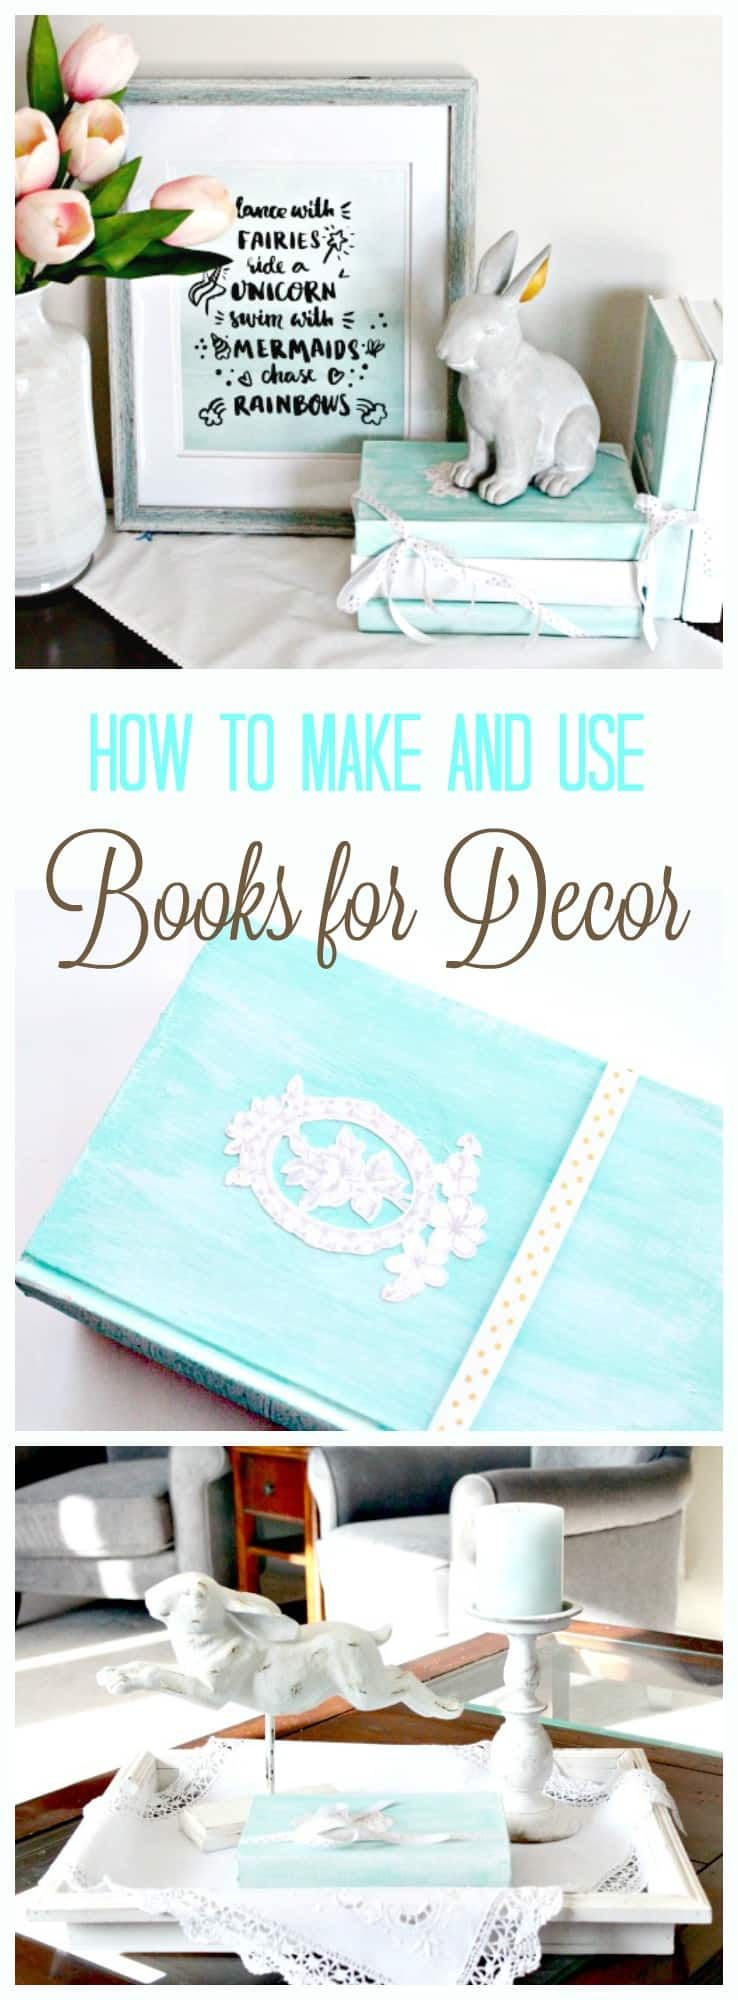 books for decor, using books to decorate, home decor with books, how to decorate with books,